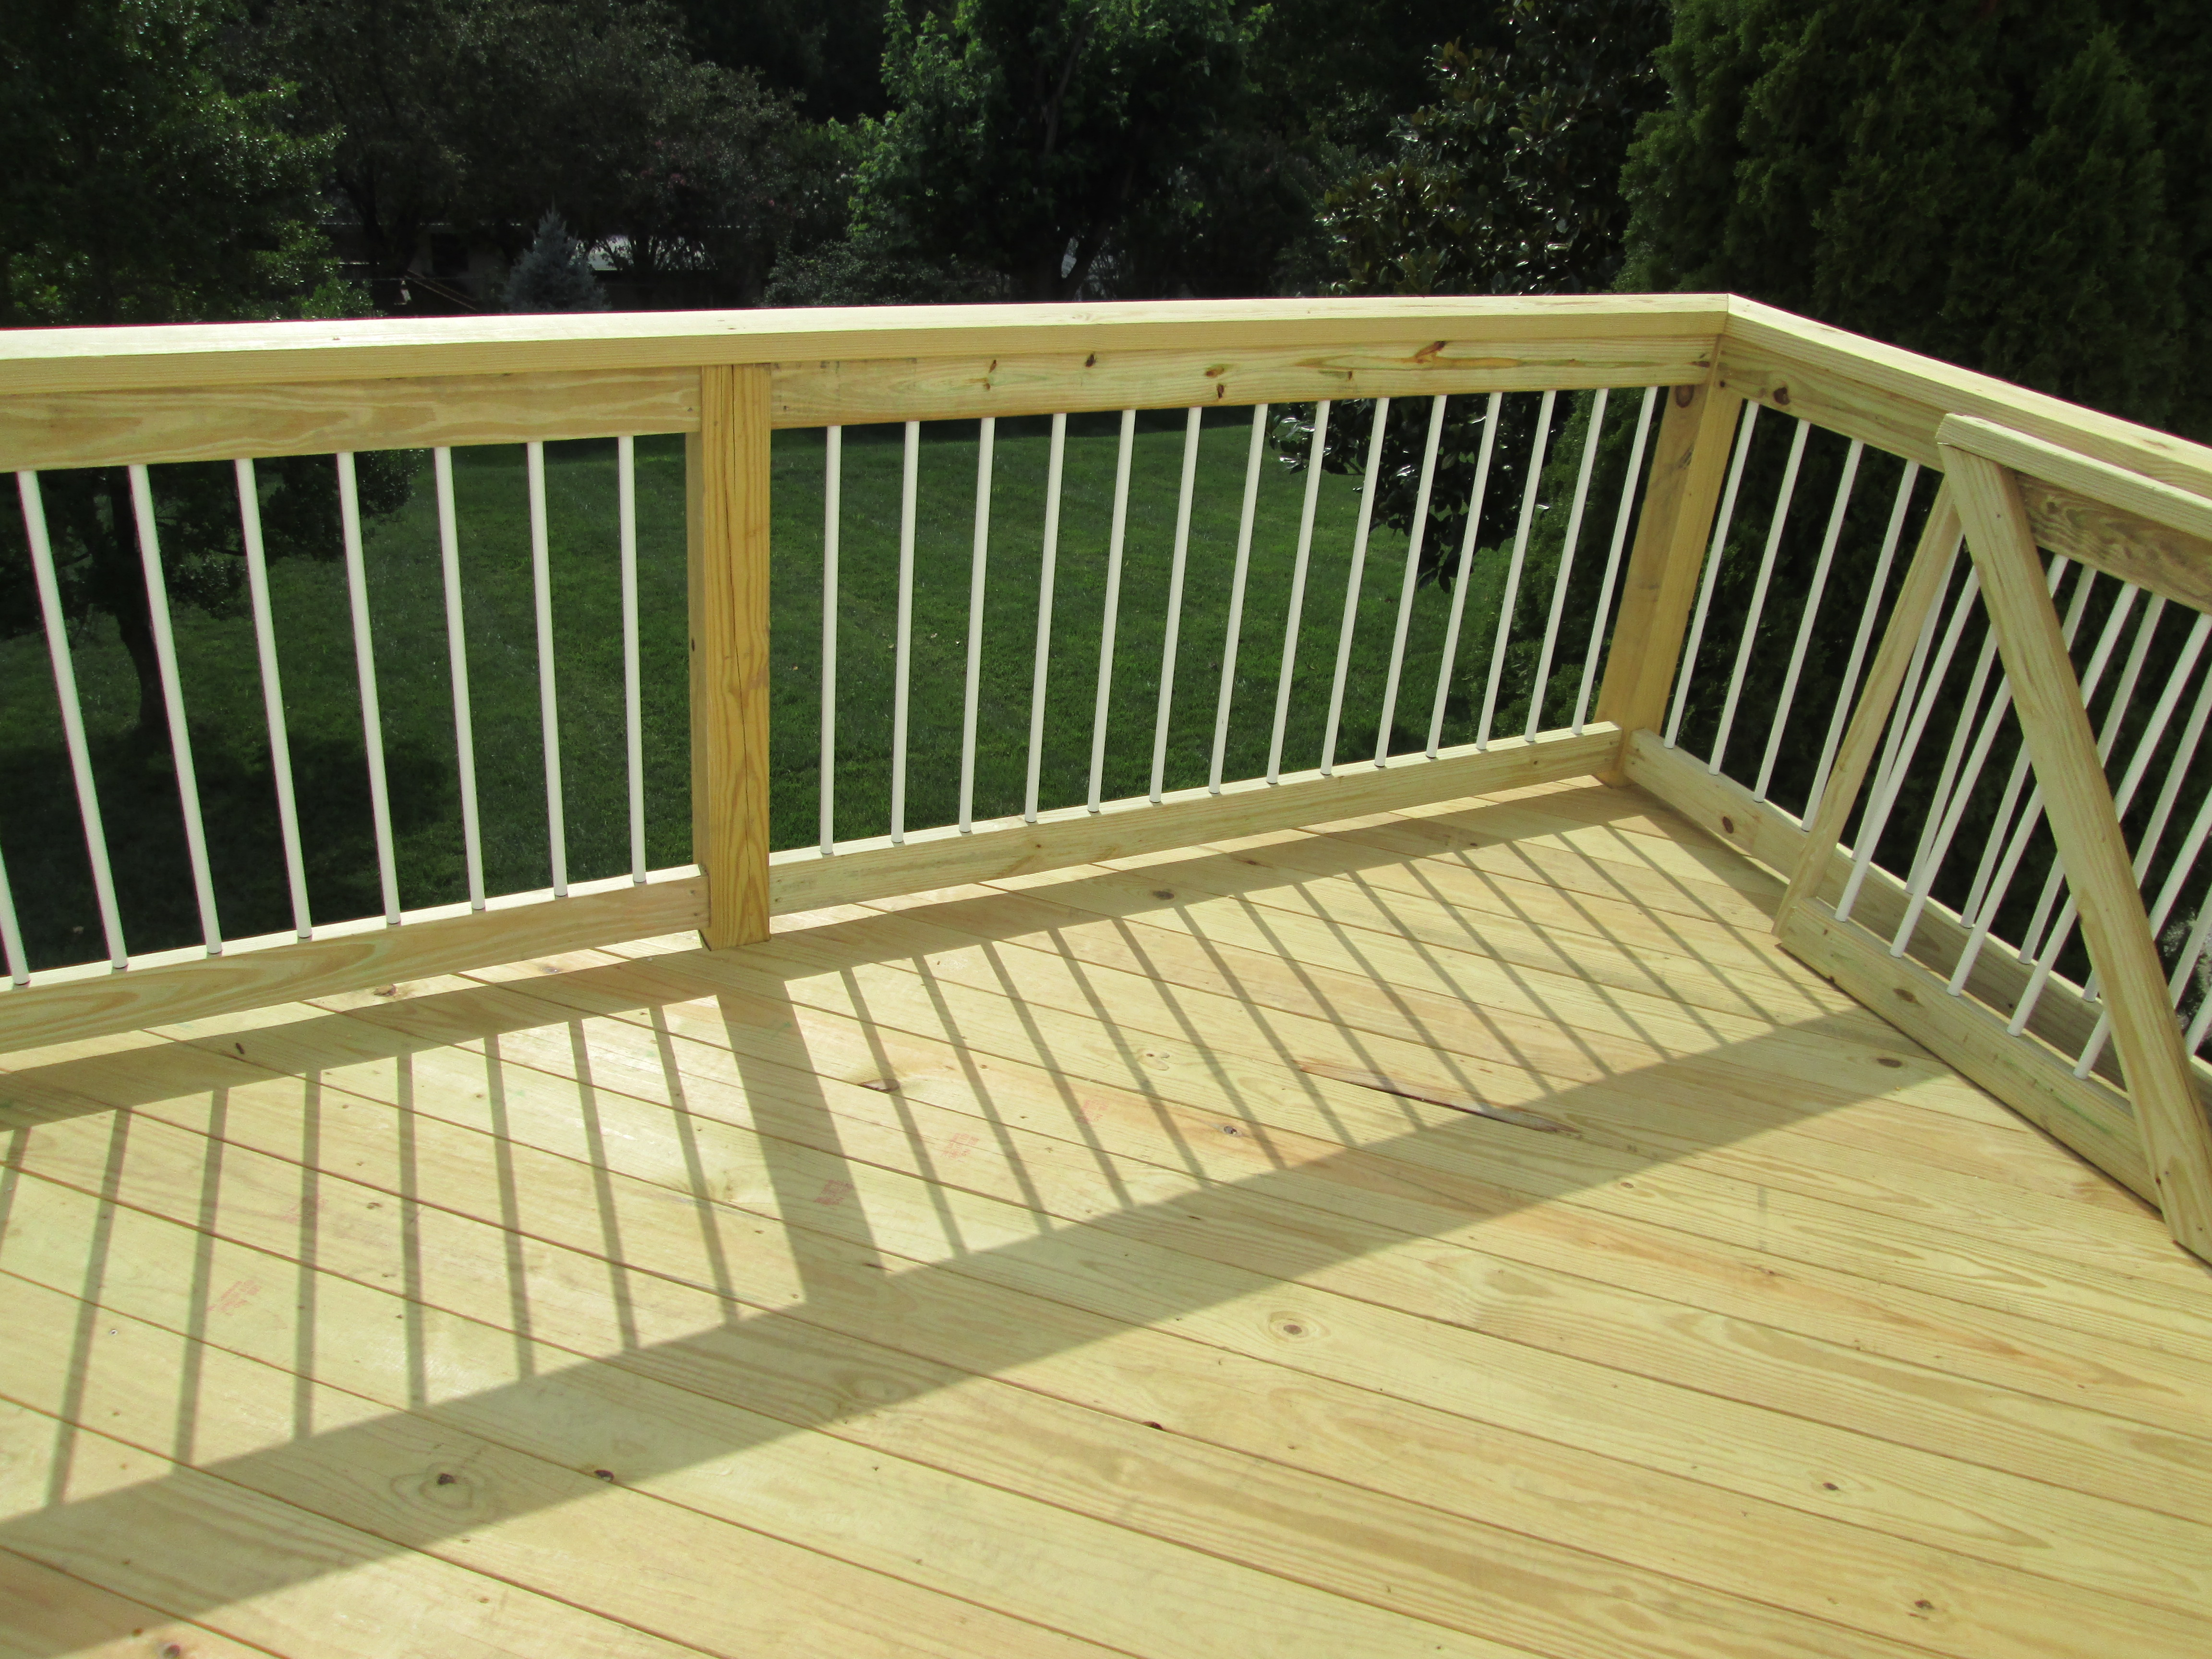 Pressure treated lumber for decks or screened porches by for Which timber for decking